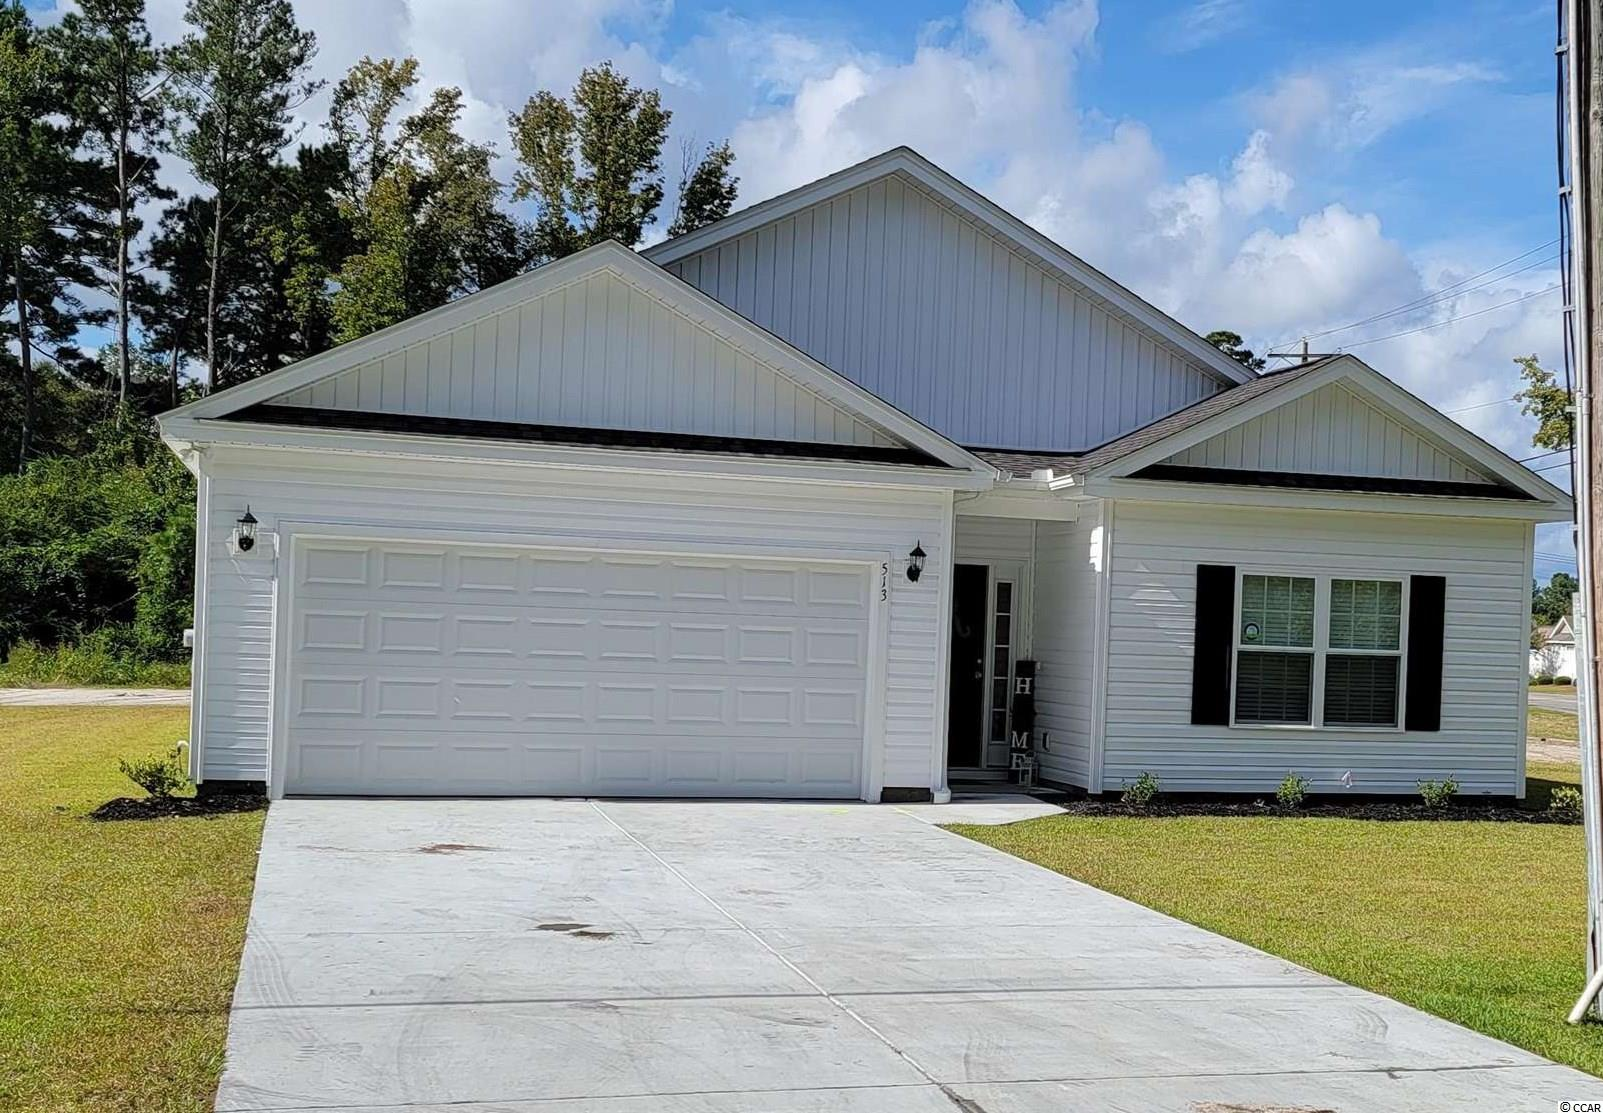 """No HOA! No HOA! No HOA! No HOA! No HOA! No HOA! No HOA! No HOA!  This Beautiful """"Topsail Plan"""" Plan isLocated in Quattlebaum Acres and  Features include but are not limited to 3 Bedrooms 2 Baths, 2 Car Garage, Great Open Floor Plan, Vaulted and Trayed Ceilings, 2 Ceiling Fans, and Vinyl Windows, Plans also include Separate 10' x 14' Concrete Patio, Sidewalks to Front Entry and Driveway. These new Homes also include 36"""" Profiled Kitchen Cabinets with Top Molding Trim and Door Knobs, Stainless Steel Appliances, Kitchen Pantry, Linen Closet, Completely Trimmed and Painted Garage with Drop Down Storage Access, which is Floored for your convenience, and Electronic Garage Door with Remote Openers. """"Low E"""" Energy Efficient Windows, Upgraded Insulation Package, Landscaped, Sodded Yard, and so much more.  All of the homes are built with a """"Maintenance Free"""" Lifestyle in mind. Quattlebaum Acres conveniently located near Shopping, Medical Offices and Hospitals, Restaurants,  and Schools.  Call or visit us online today and find out why This Builder is The Areas Premier Local Builder! Other Floor Plans, Inventory Homes and Custom Plans are Available. Call the Listing Agent for New Homes Availability and to make an Appointment to see Builder's other Homes. Some Lots may have additional Premiums!"""